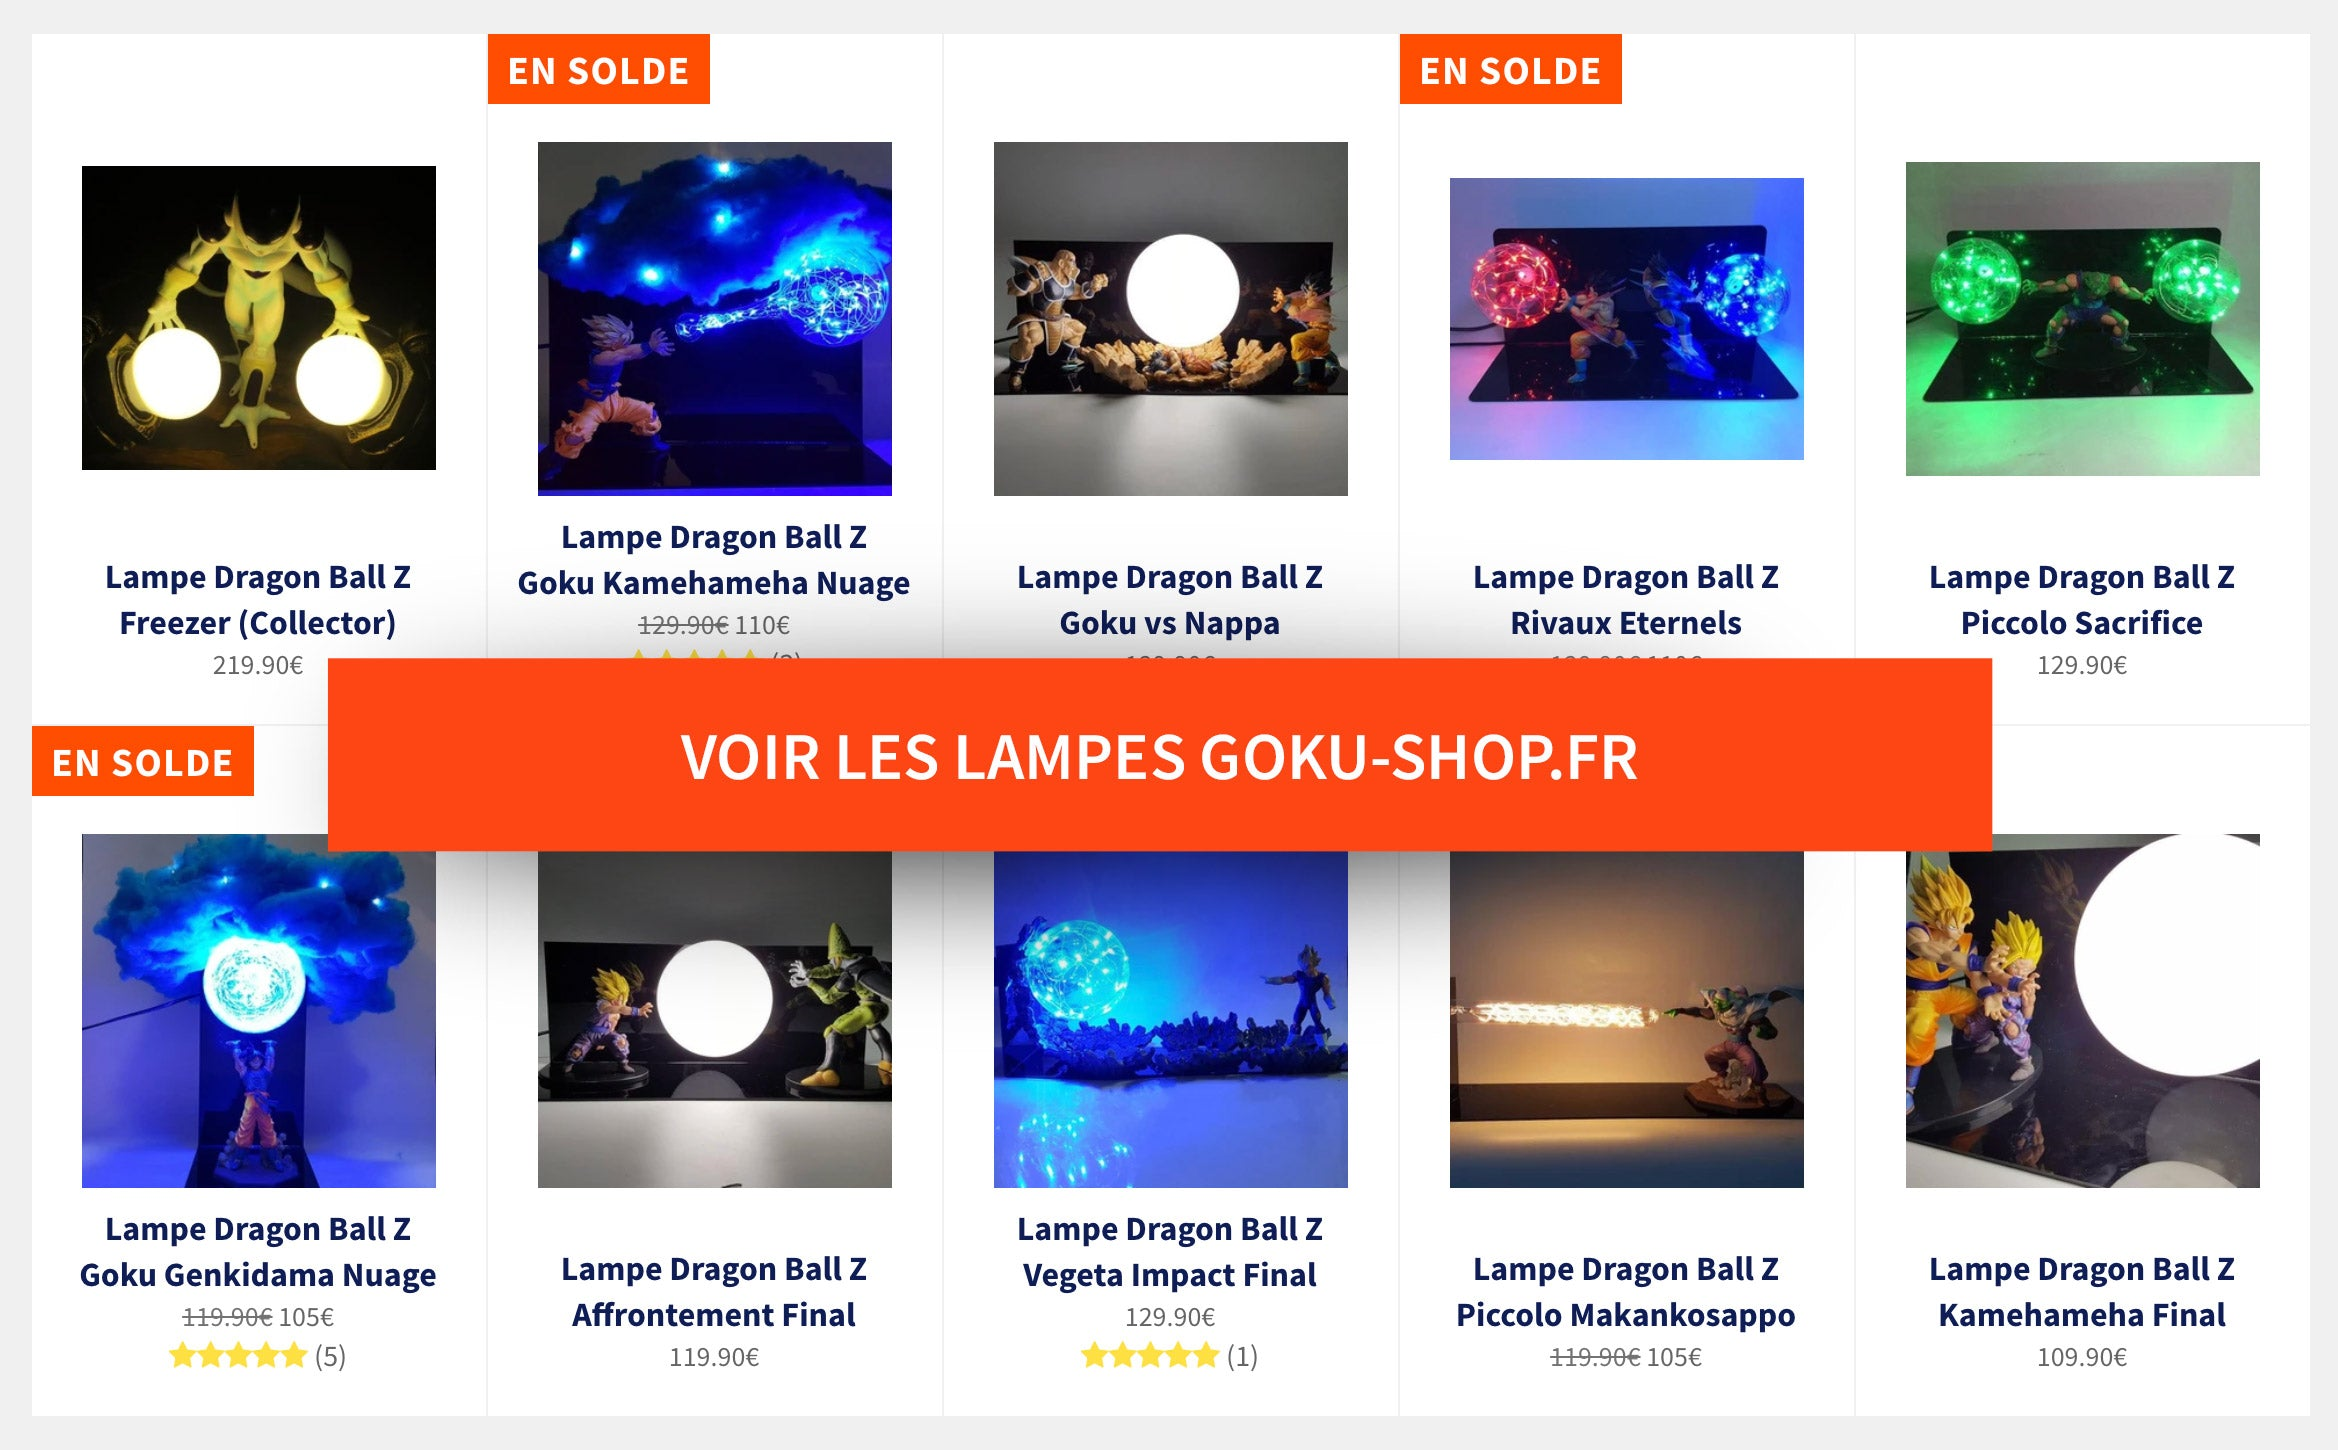 Lampes Dragon Ball Z